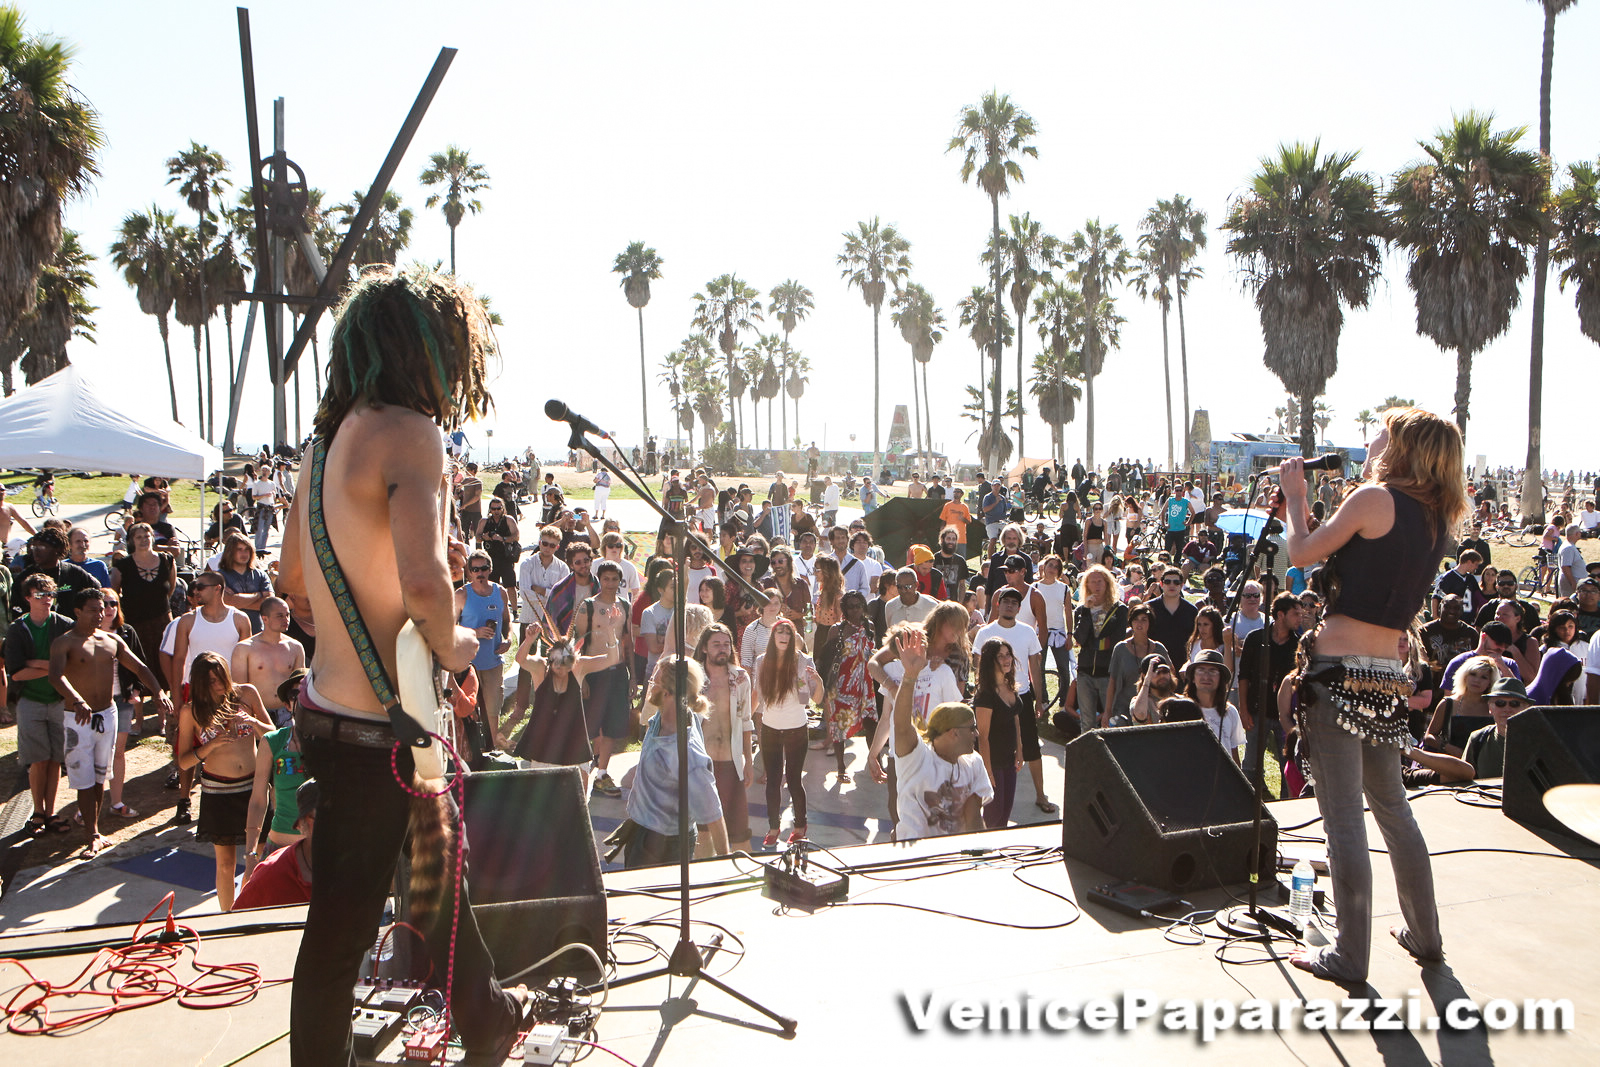 Venice Beach Music Fest 13 Is Proud To Be A Community Partner With The Westside Food Bank Event Will Feature An On Site Canned Drive